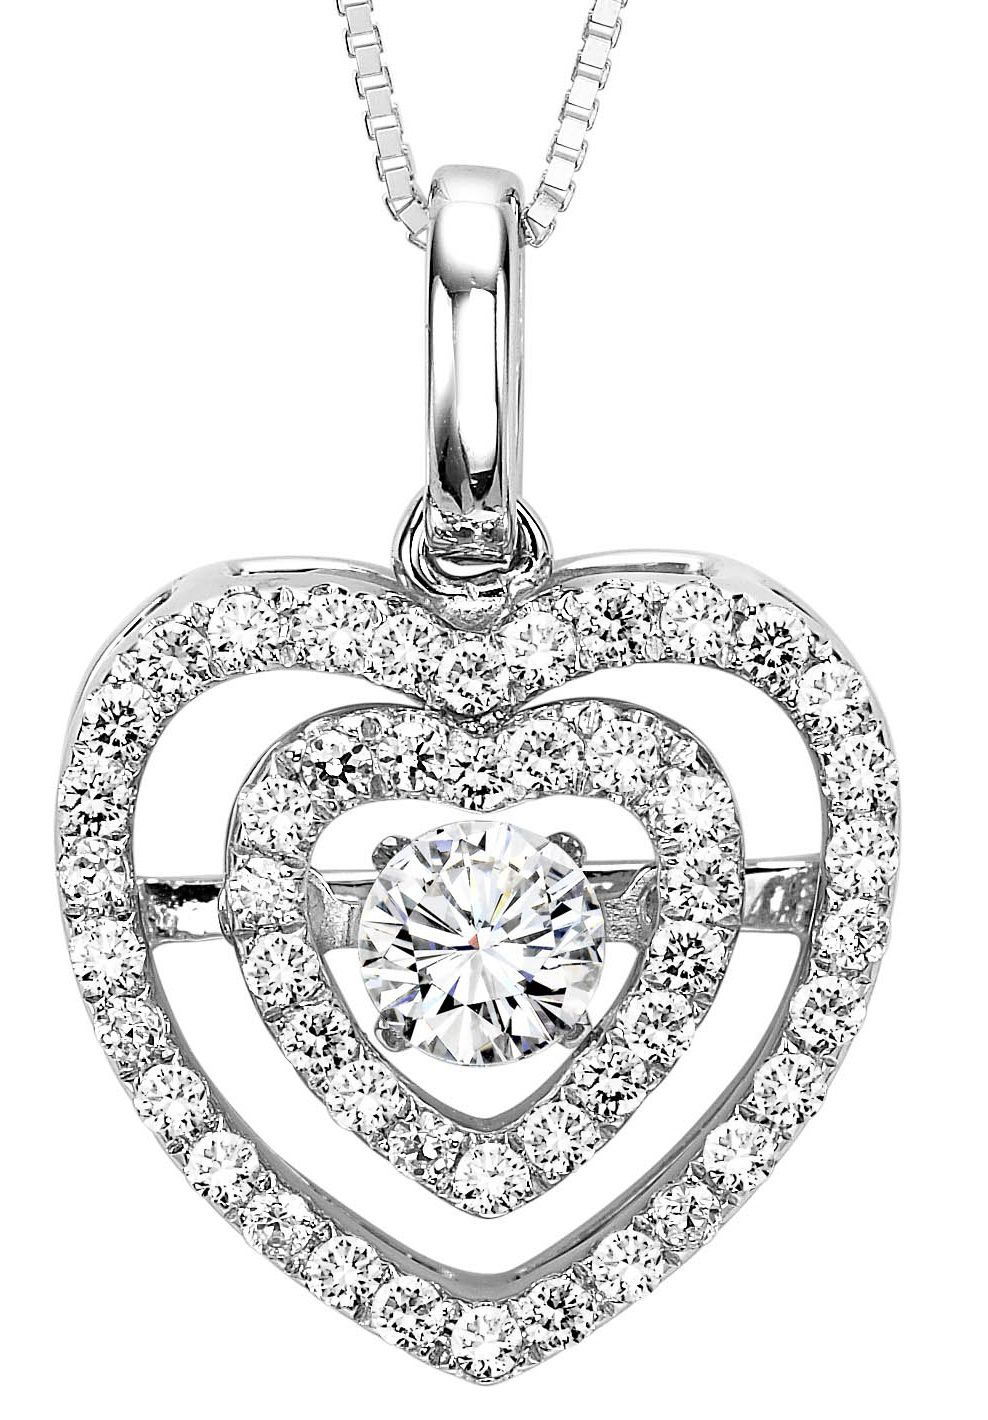 Rhythm of love diamond pendant httpsatlantadiamondp rhythm of love diamond pendant httpsatlantadiamond aloadofball Images